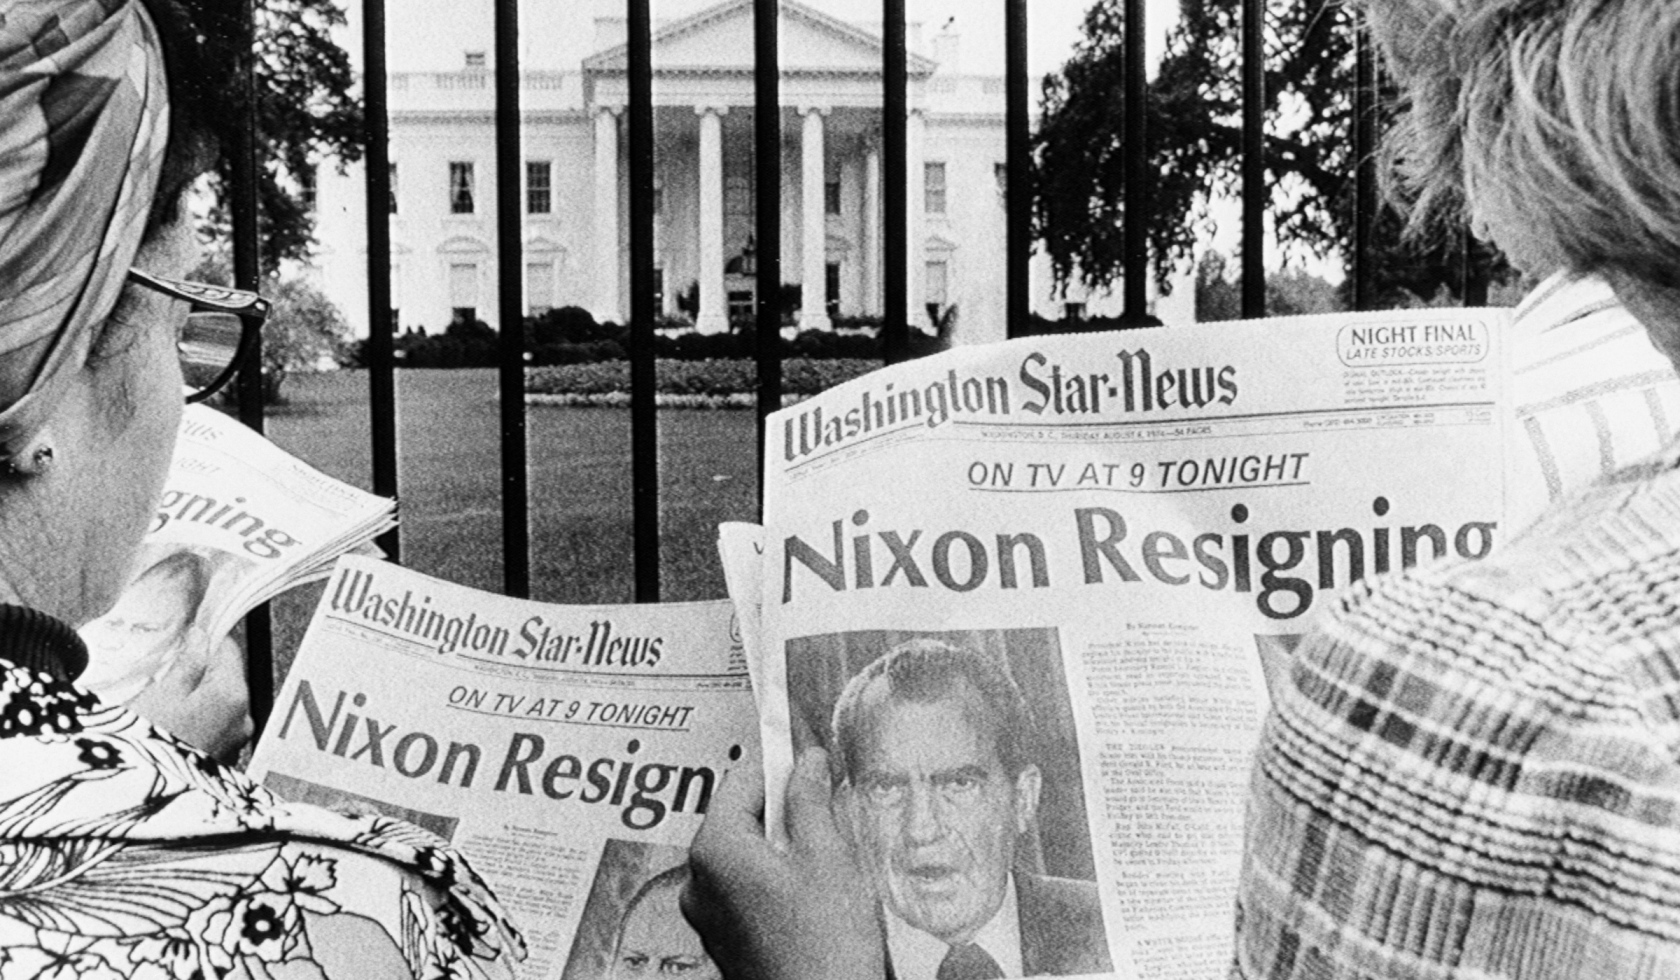 the second half of watergate was bigger worse and forgotten by the